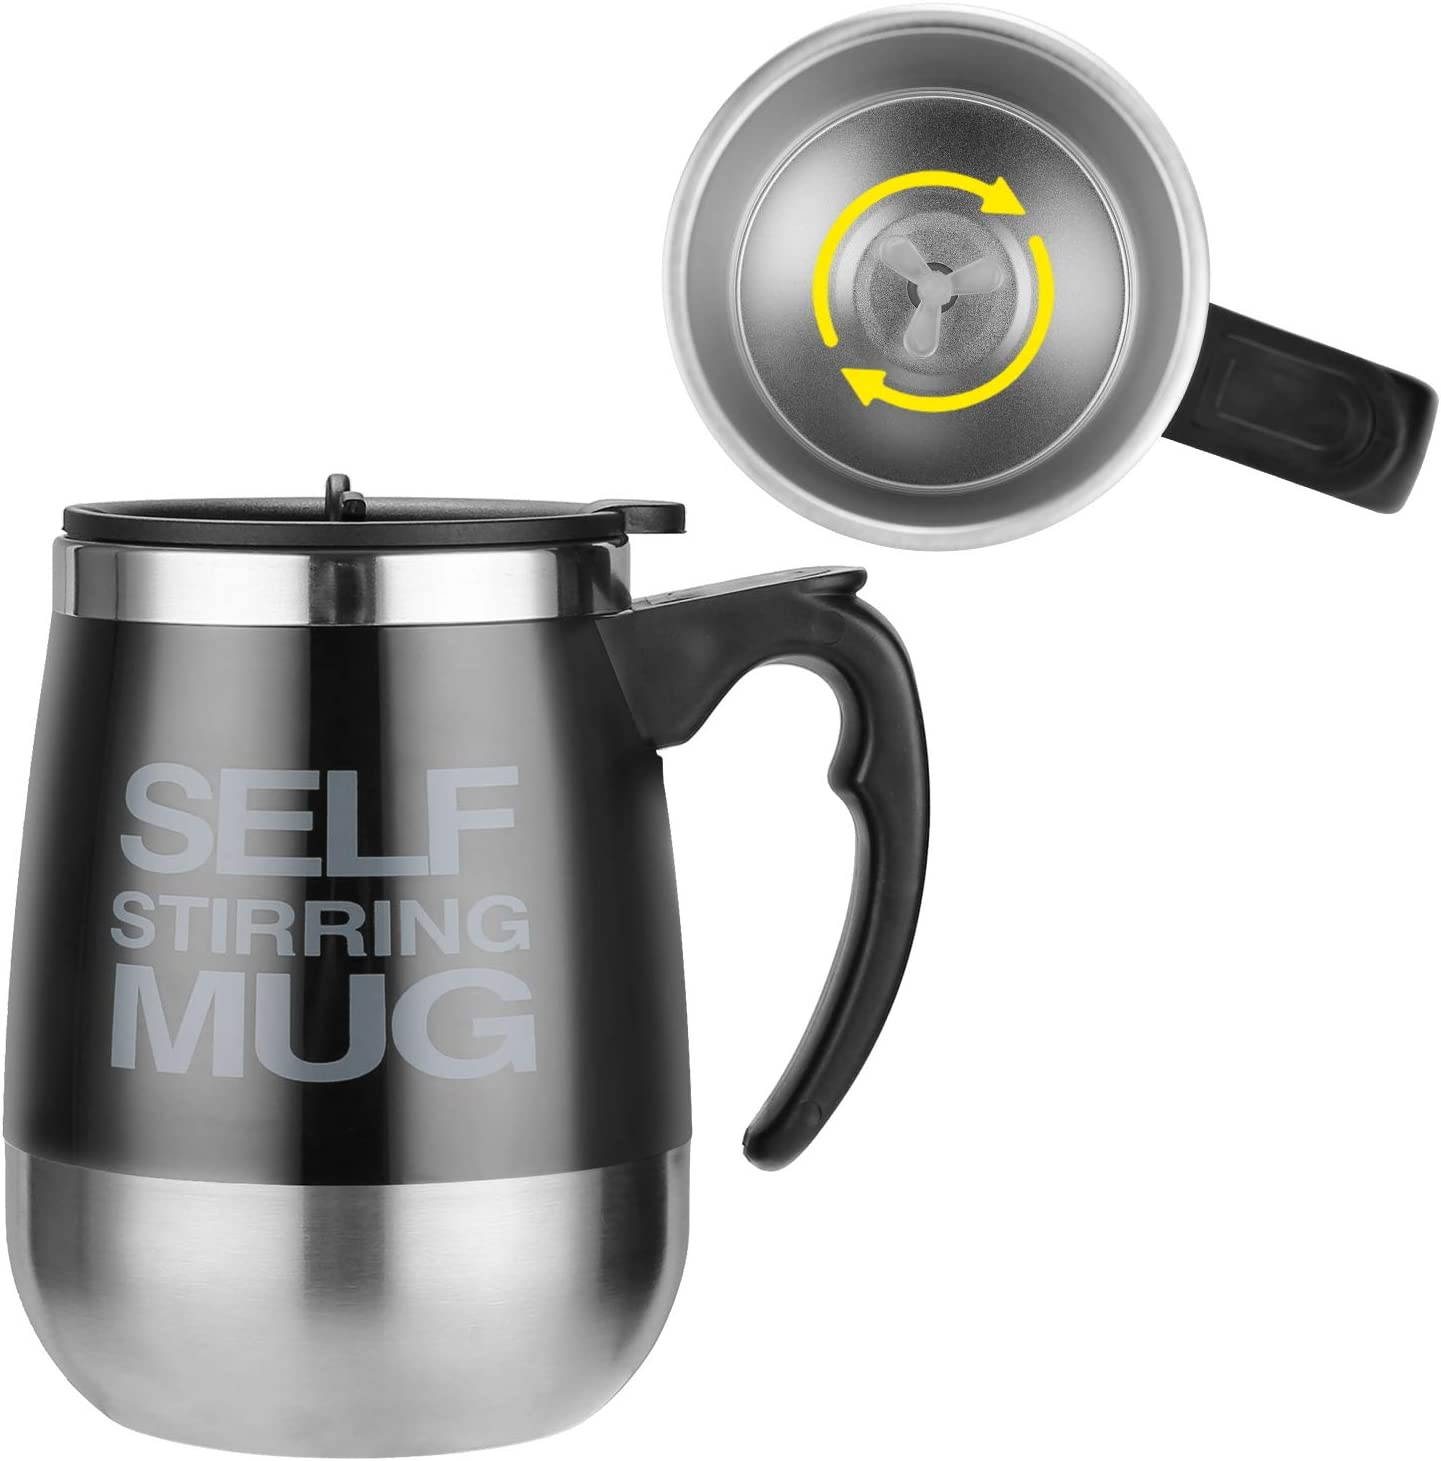 Fusiontec Self Stirring Coffee Mug, Self Stirring Coffee Cup, Stainless Steel Automatic Self Mixing Cup with Lid for Home Office Travelling 450ml/15.2oz, Black